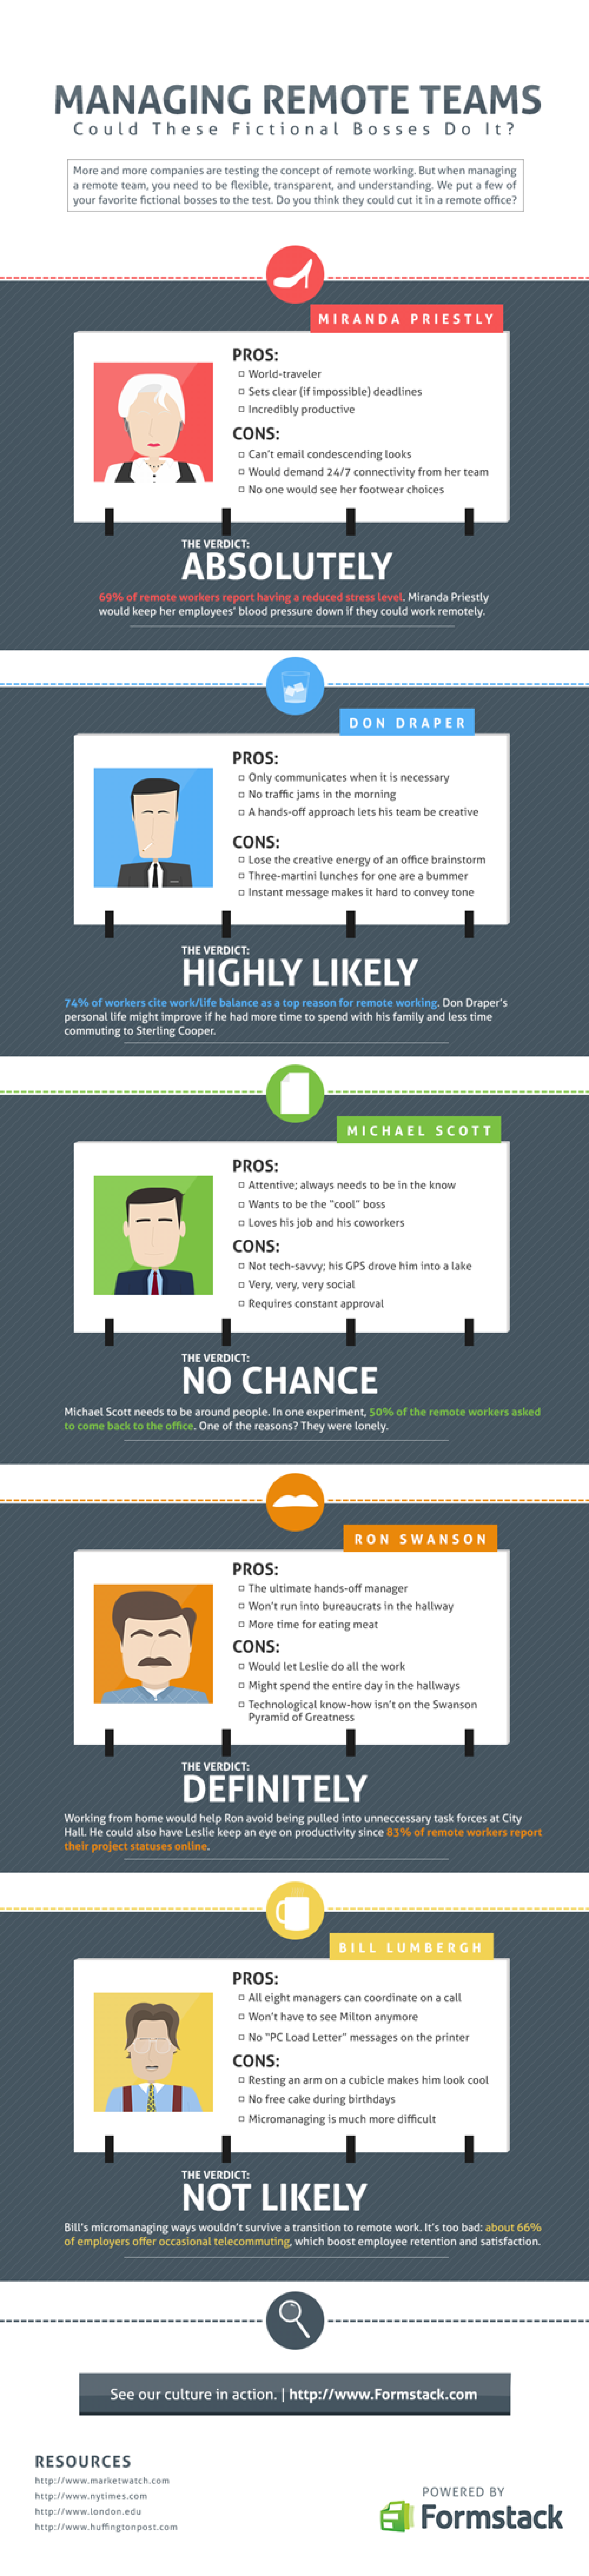 Managing Remote Teams Infographic